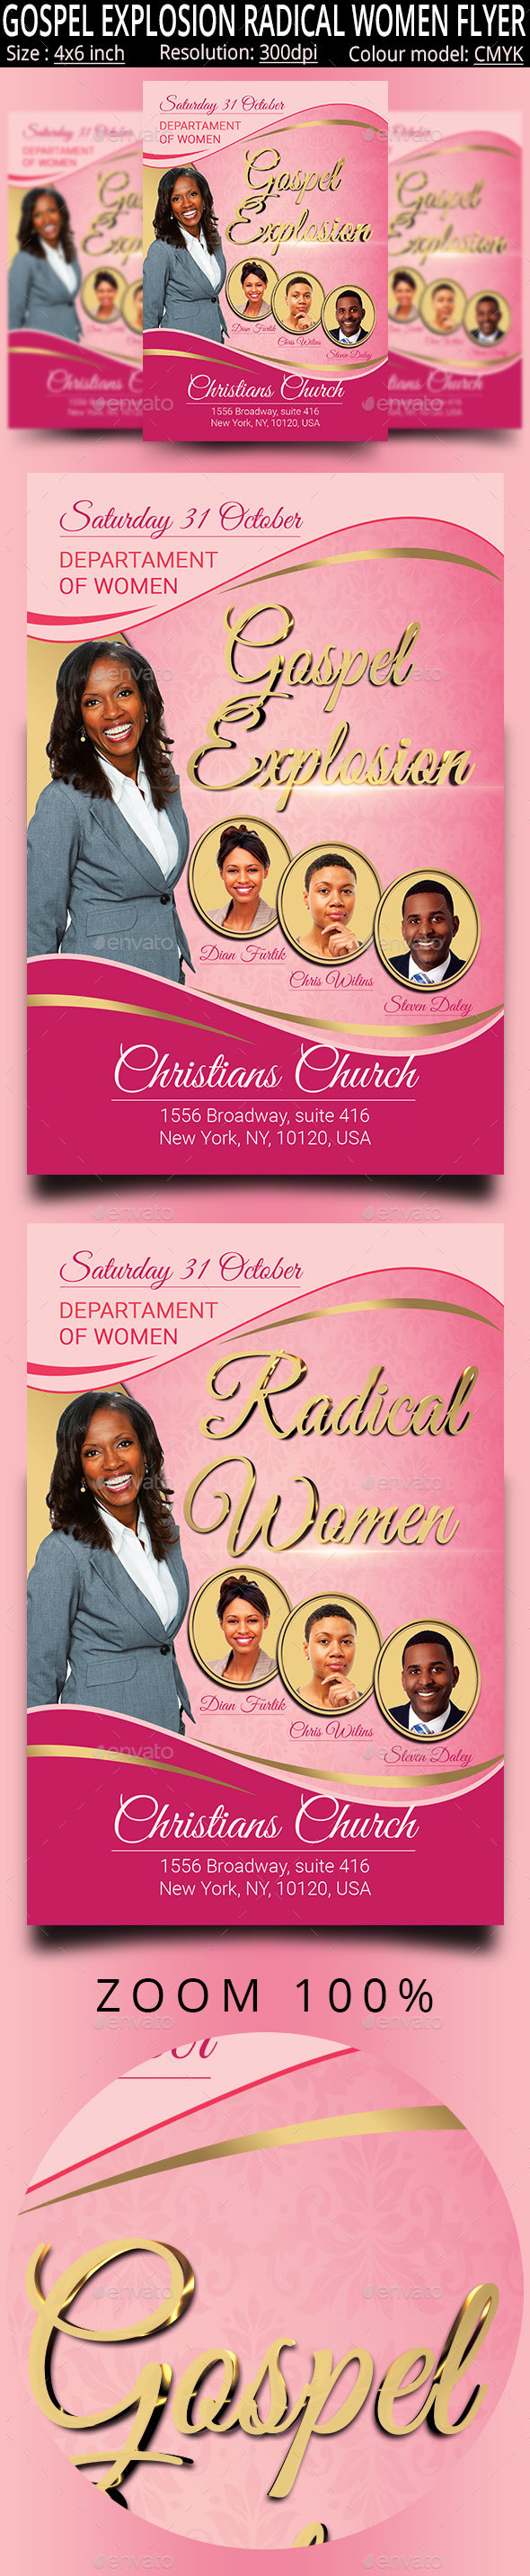 GraphicRiver Gospel Explosion Radical Women Church Flyer 20743037